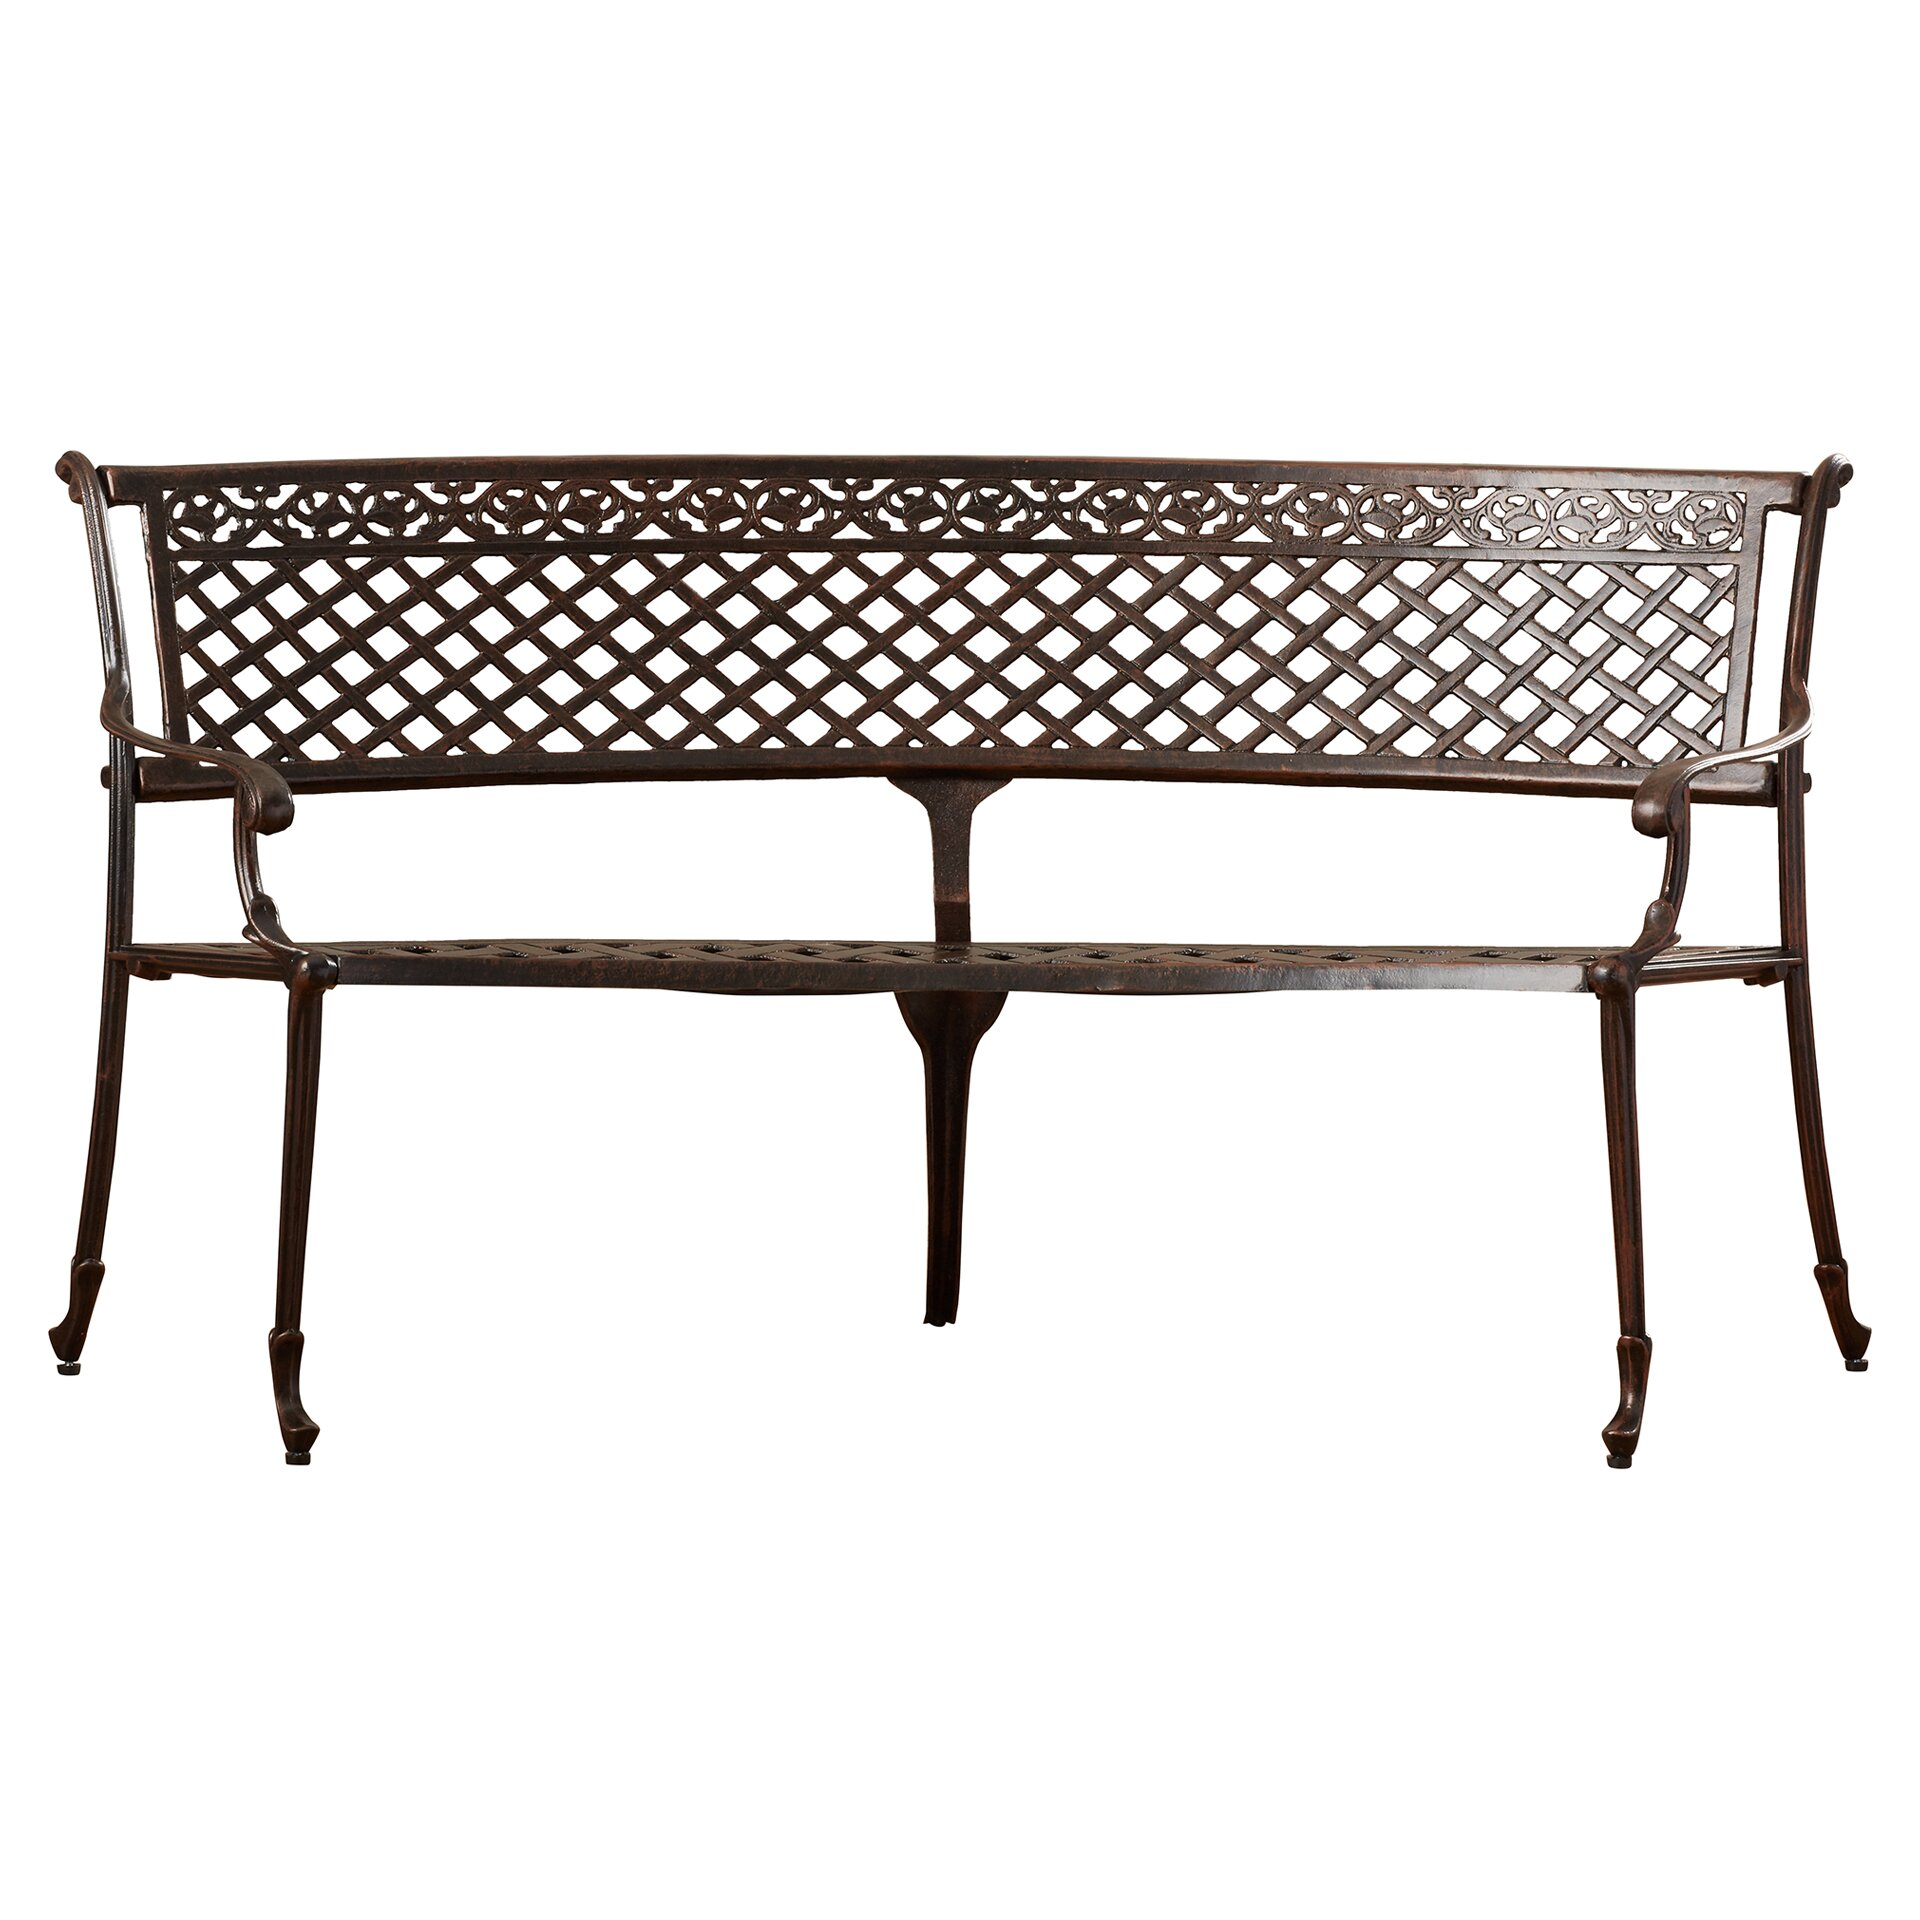 Rosalind wheeler lacombe aluminum garden bench reviews Aluminum benches